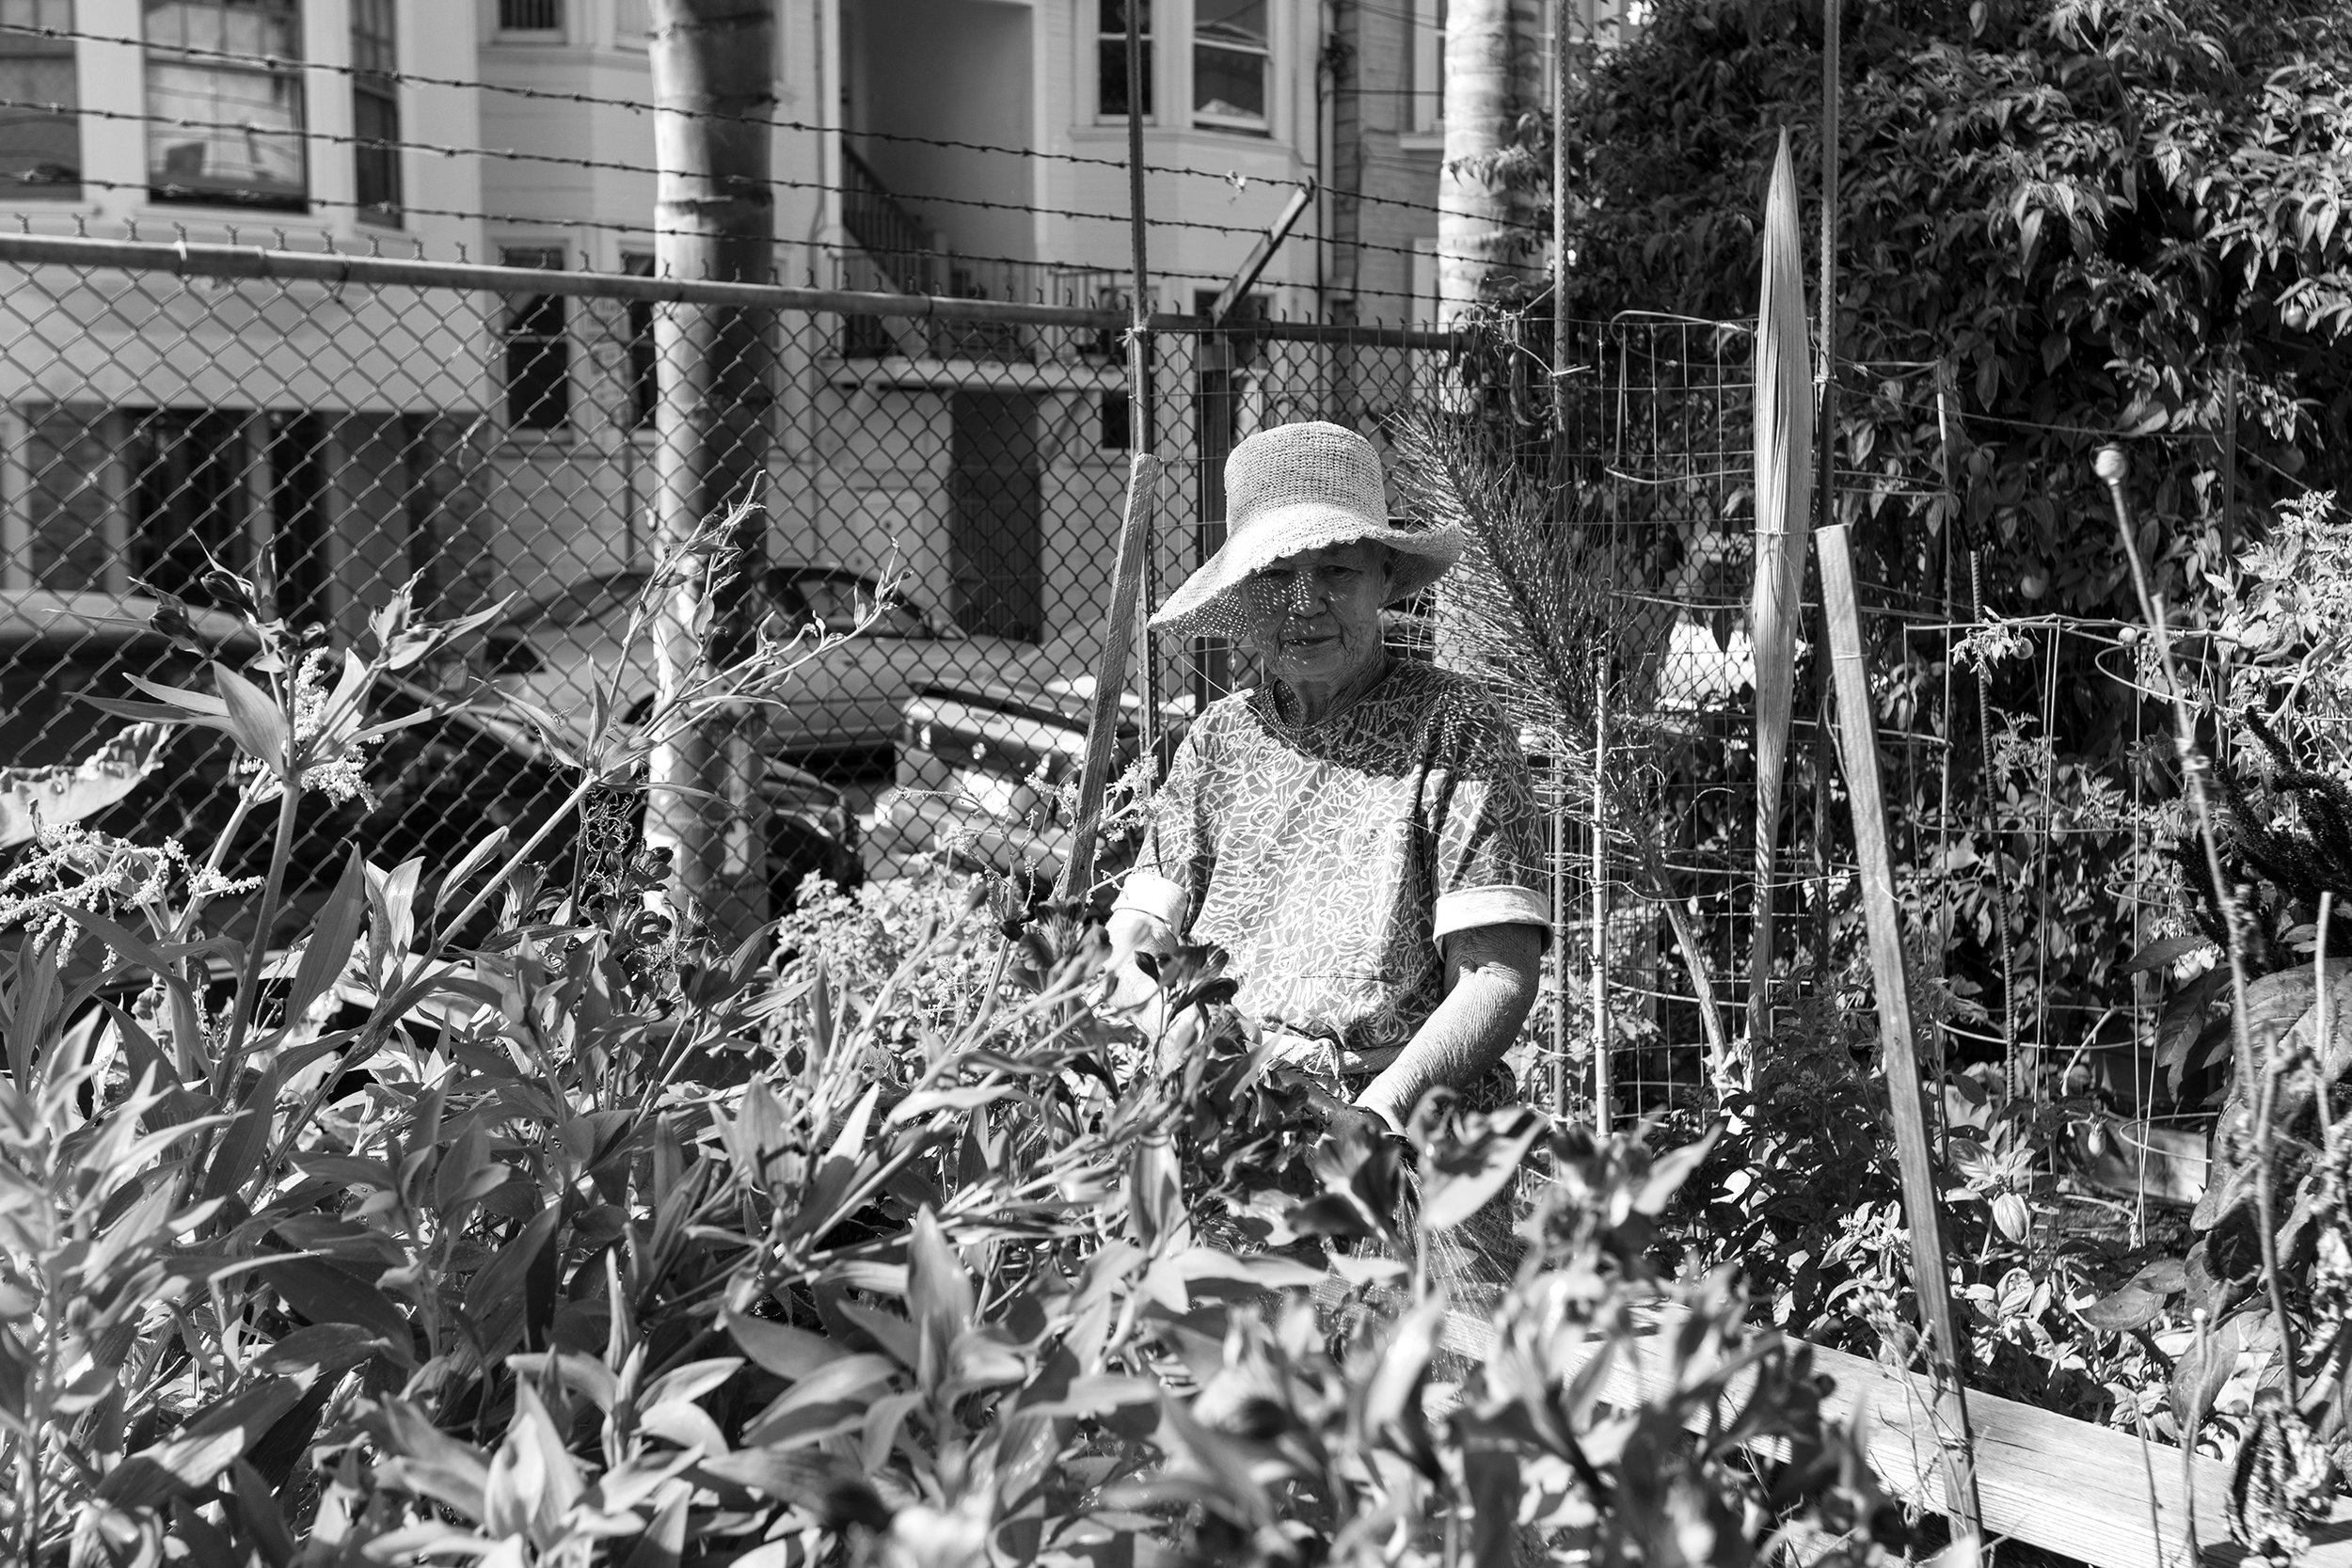 159_Scussel - Lotta at Community Garden - Bird & Dearborn B&W.jpg